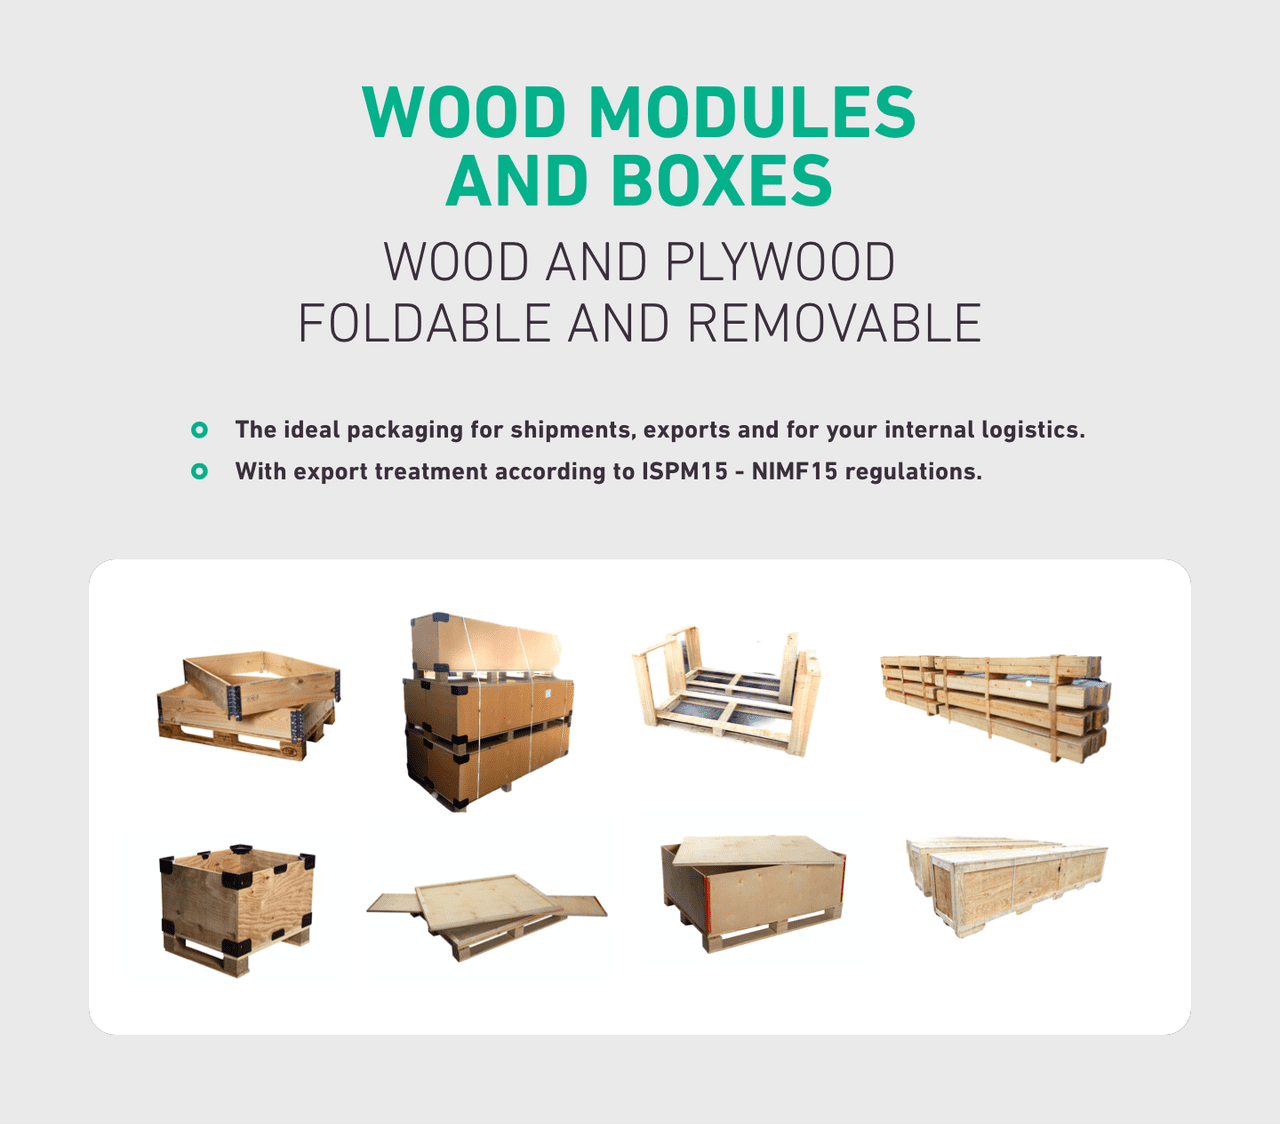 WOOD MODULES 